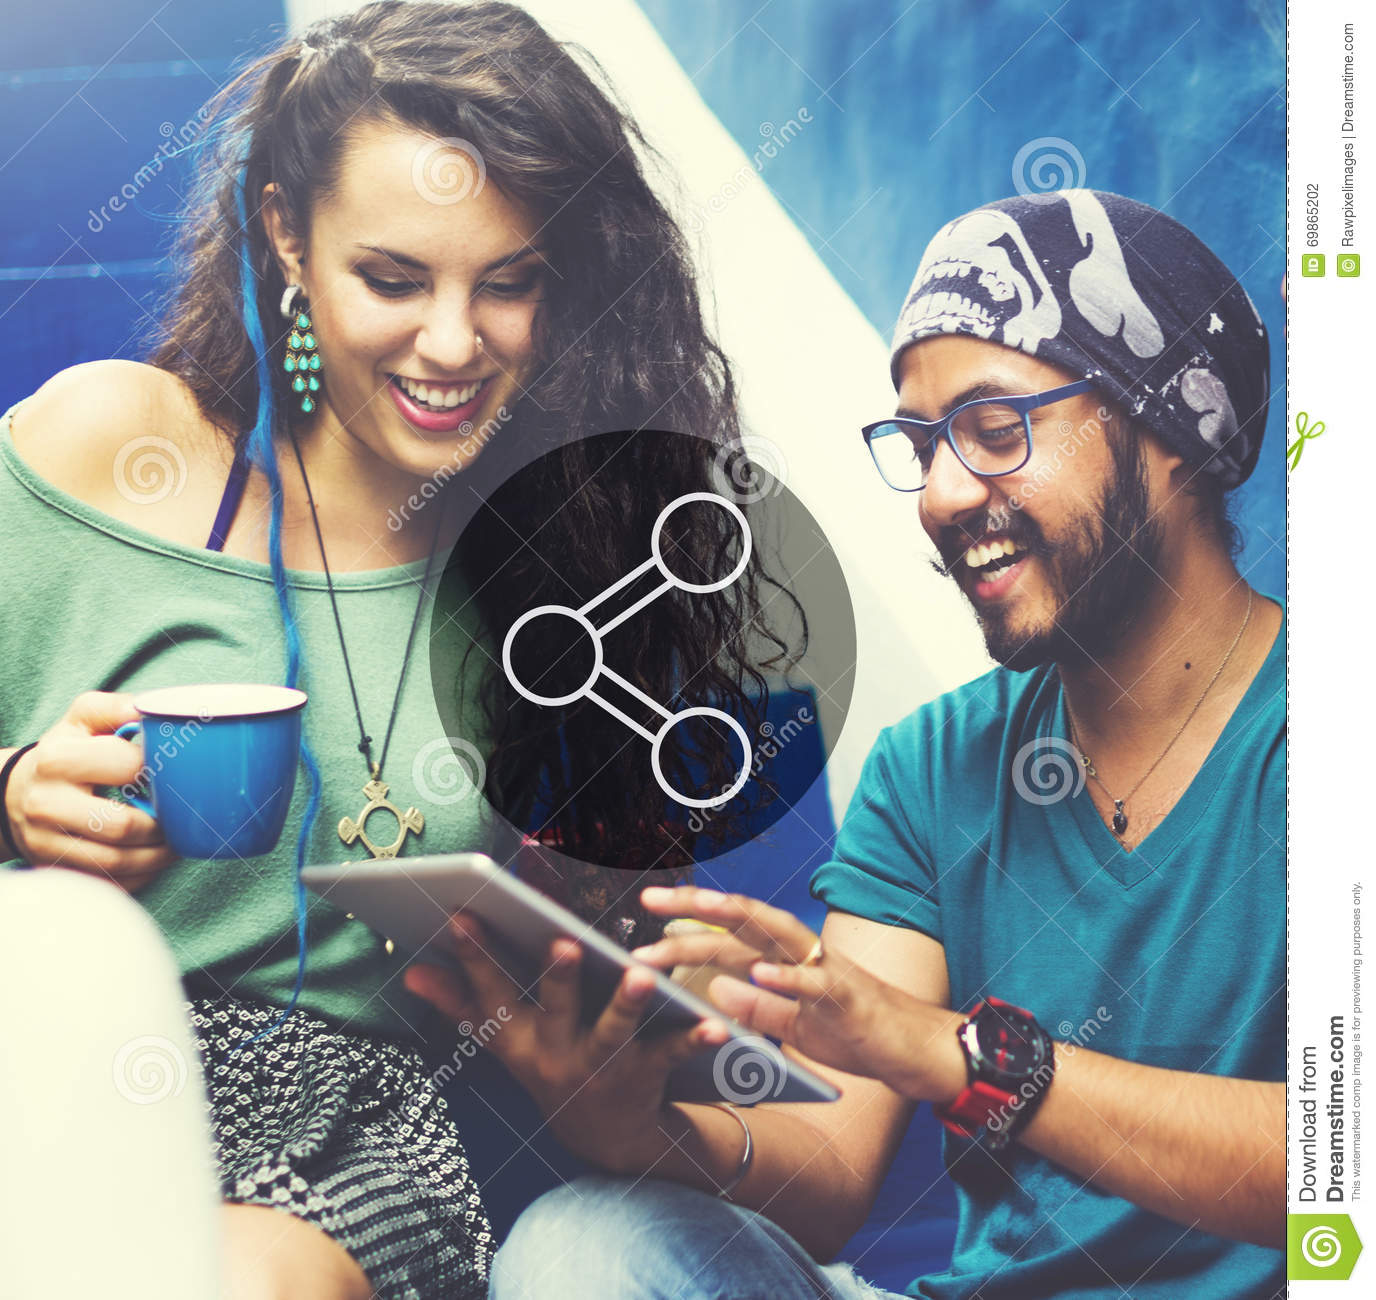 Share Connection Technology Sharing Global Communications Concep